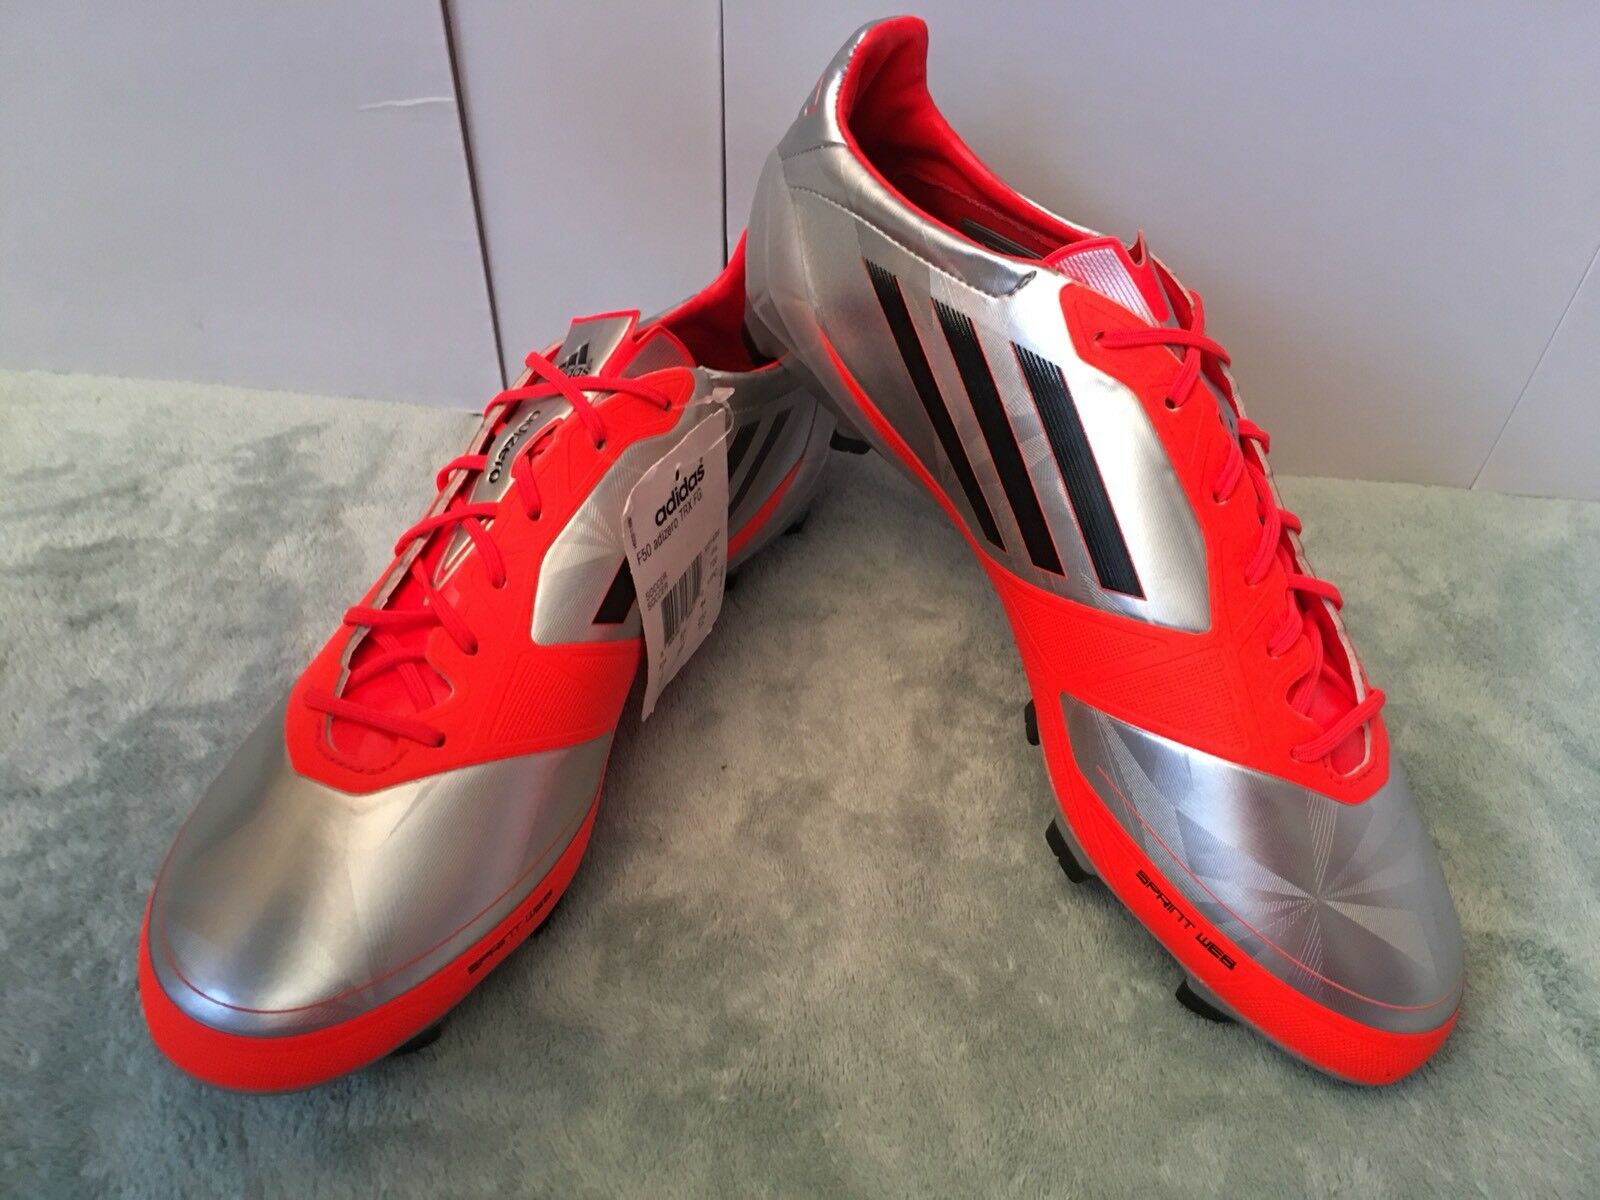 Adidas F50 adiZero Fg Synthetic Mens Soccer Cleats Size 10